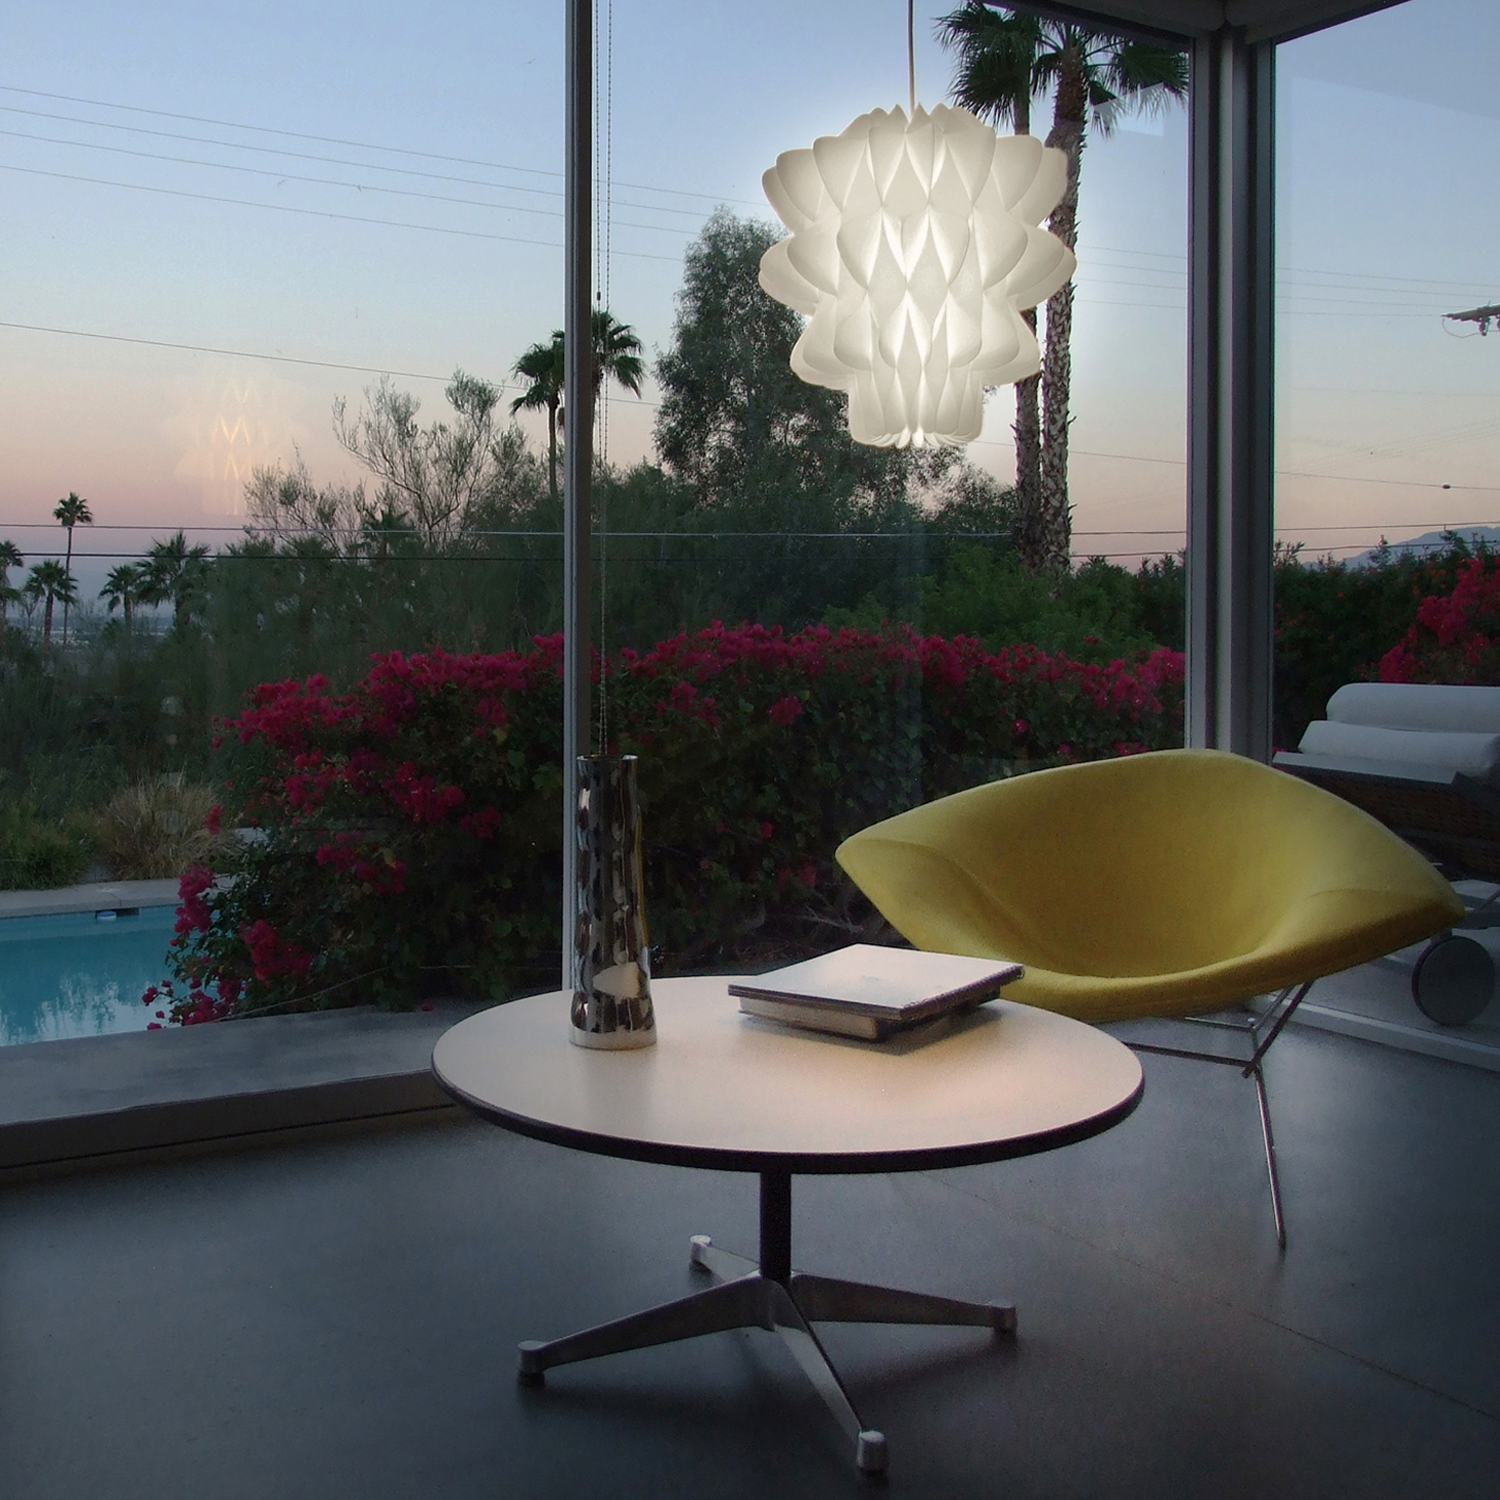 sq luum in palm springs white square.jpg